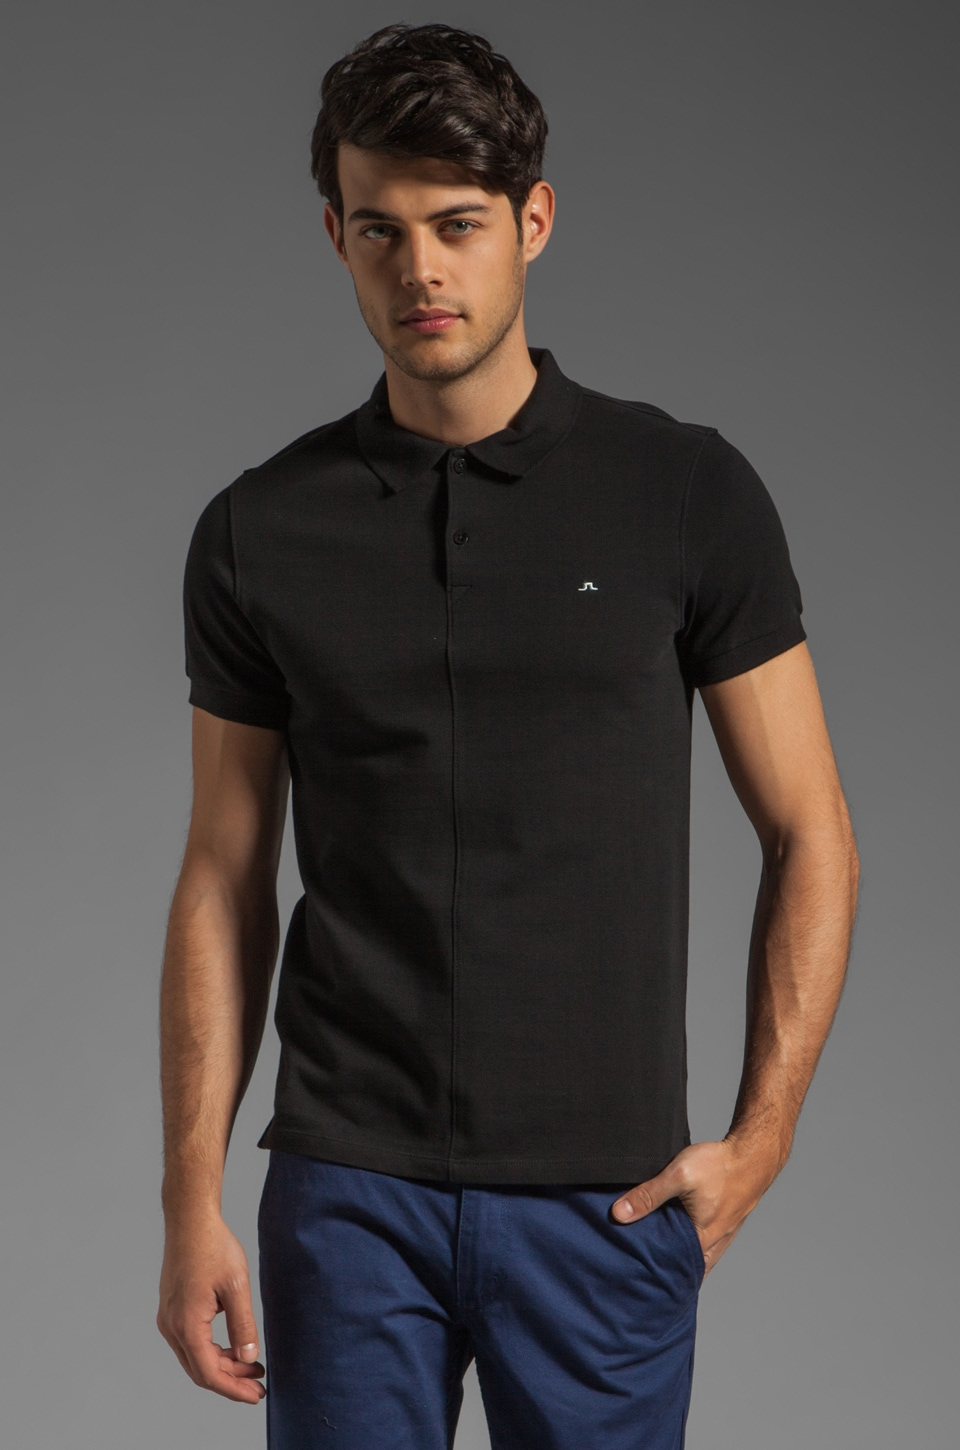 J. Lindeberg Rubi Slim JL Pique Polo in Black